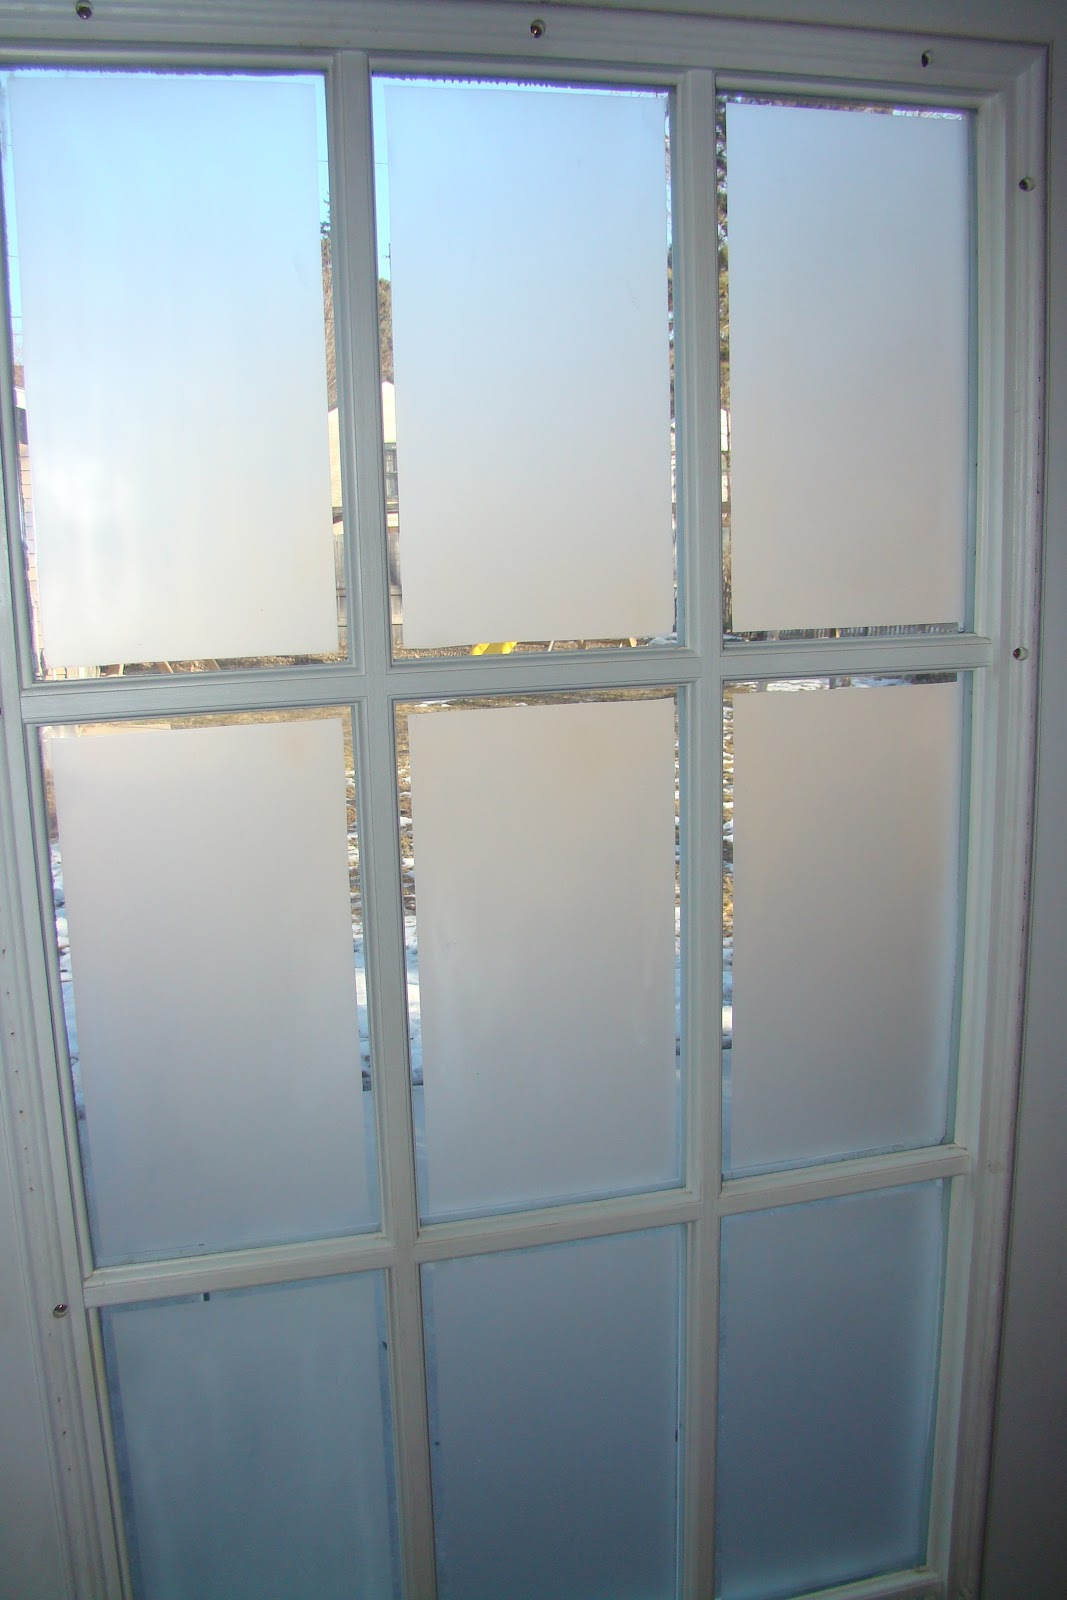 Frosted glass on french doors cindyriddle another view of the finished window rubansaba